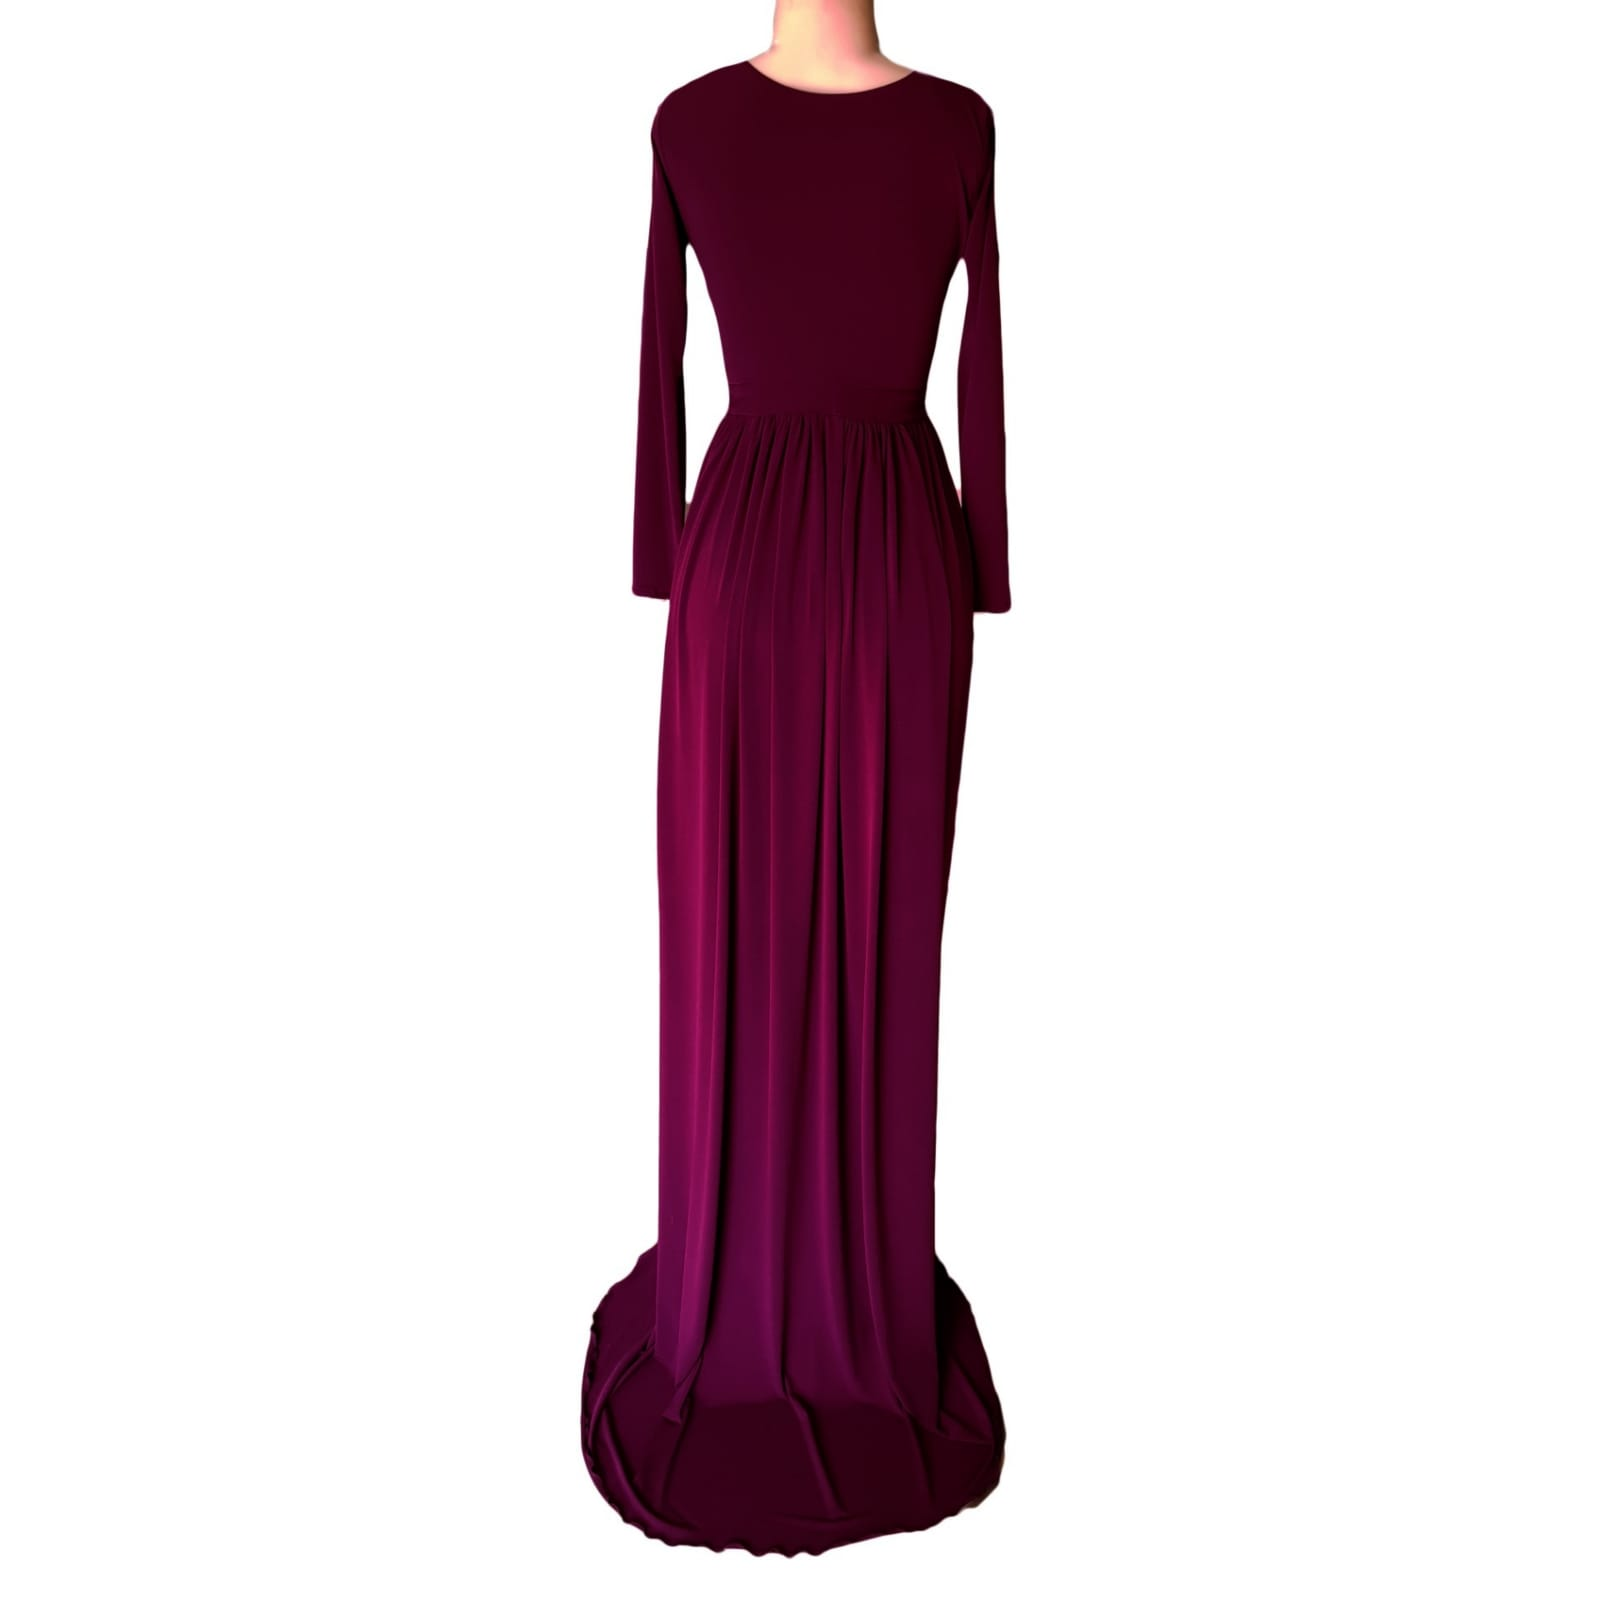 Plum flowy plunging neckline prom dress 3 plum flowy plunging neckline prom dress with long sleeves & 2 high slits and a train with matching shorts.